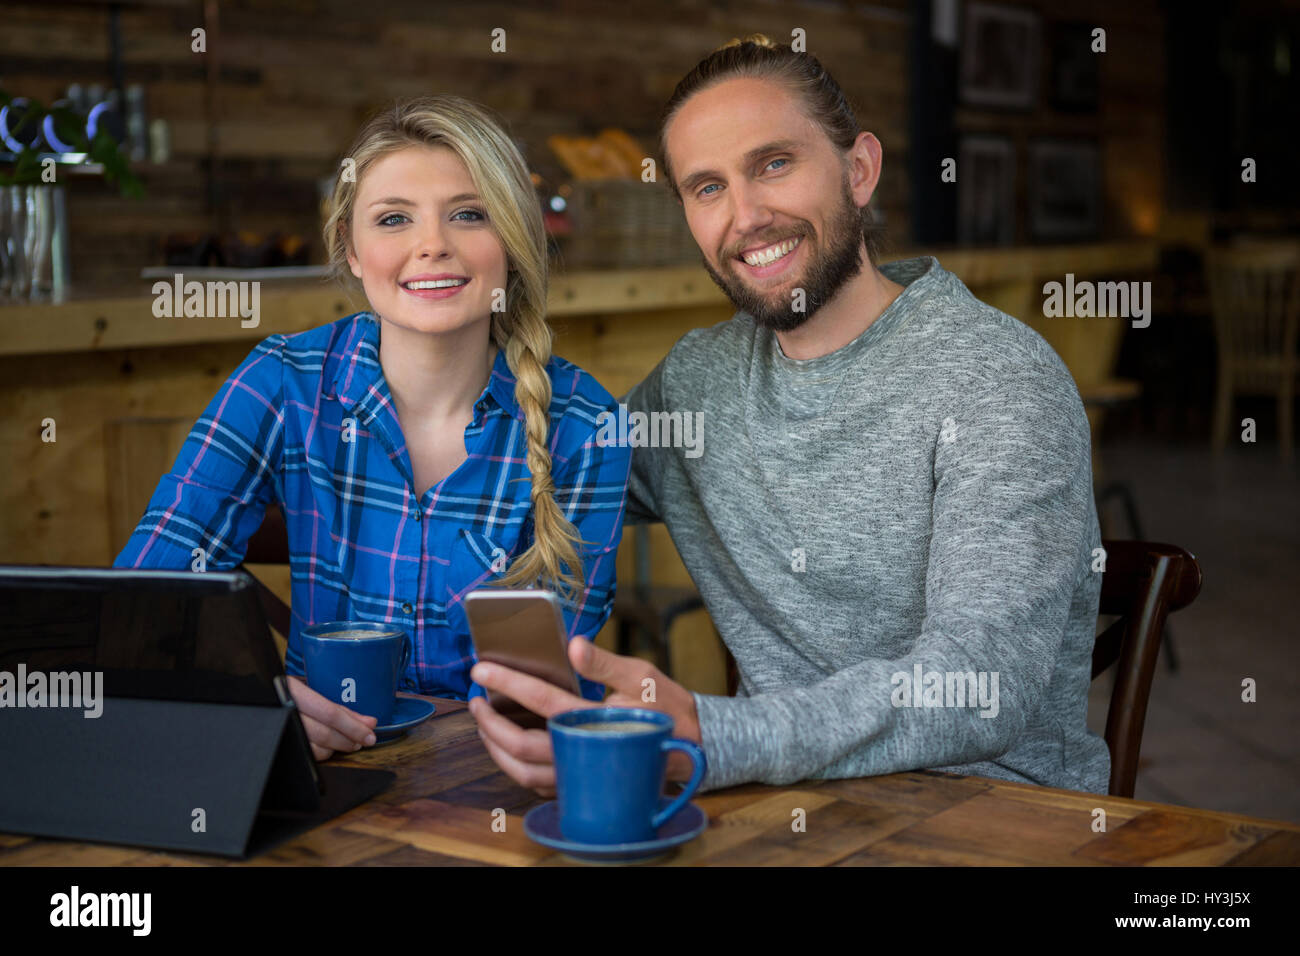 Portrait of smiling young couple with coffee and technologies in cafe - Stock Image